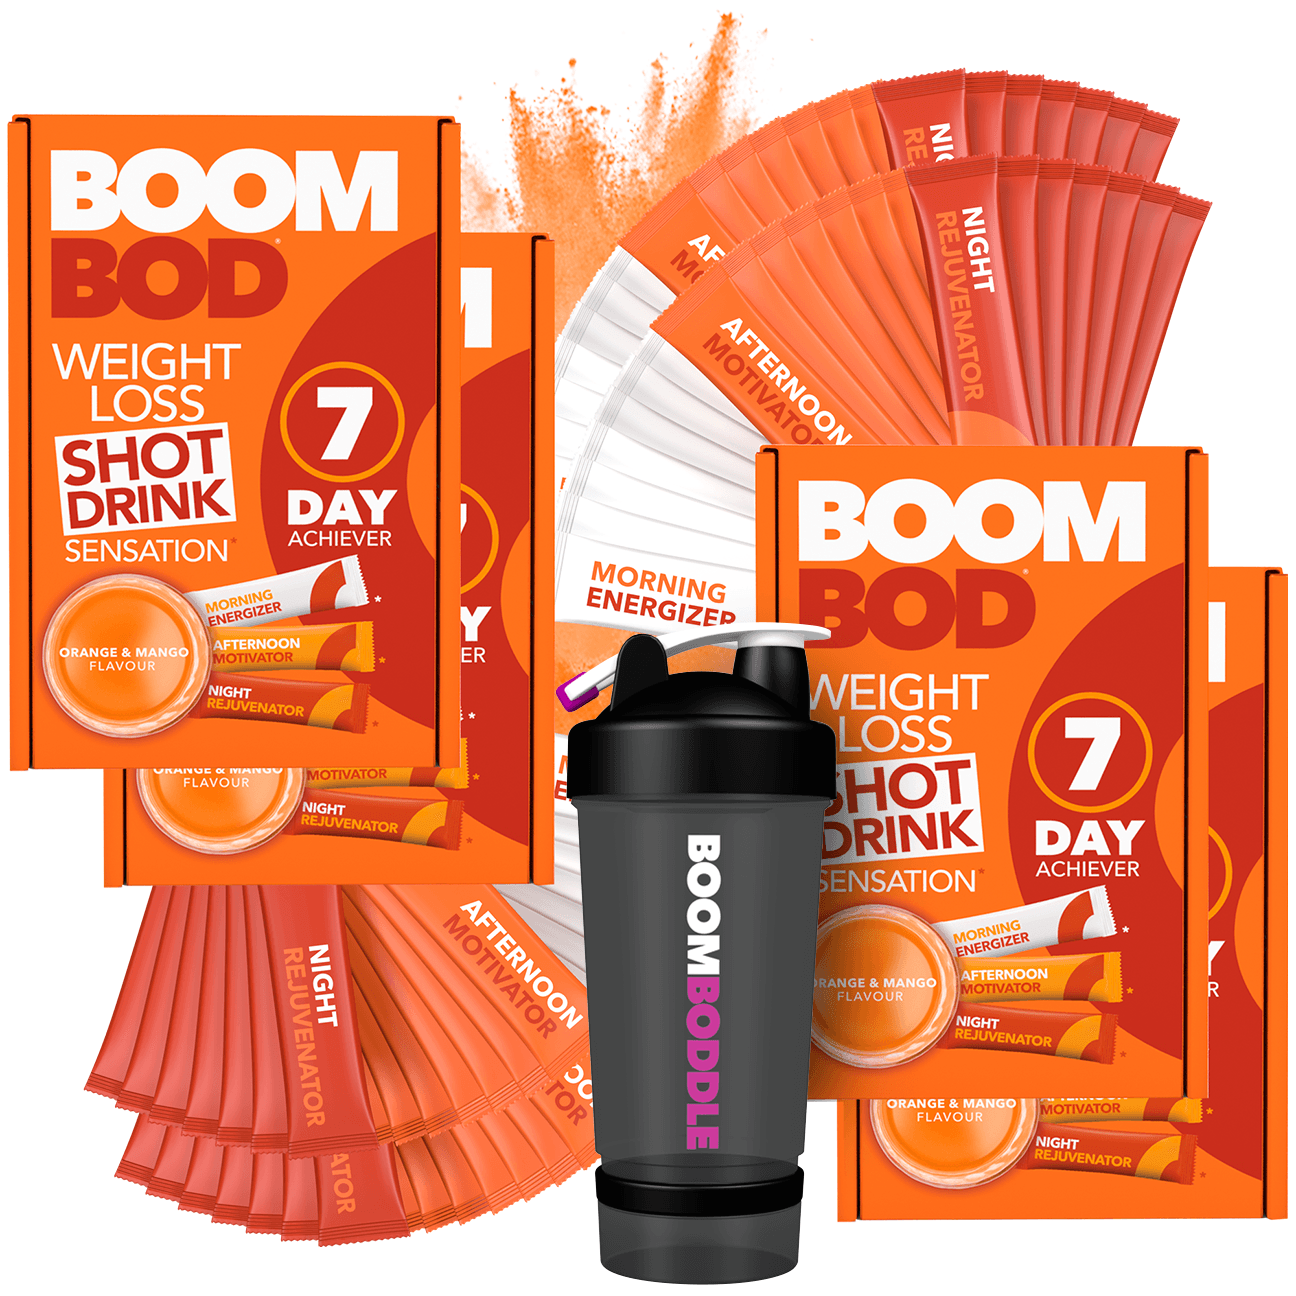 Boombod 28 Day Achiever with 20oz Black Shaker Bottle | Orange Mango | Weight Loss Shot Drink